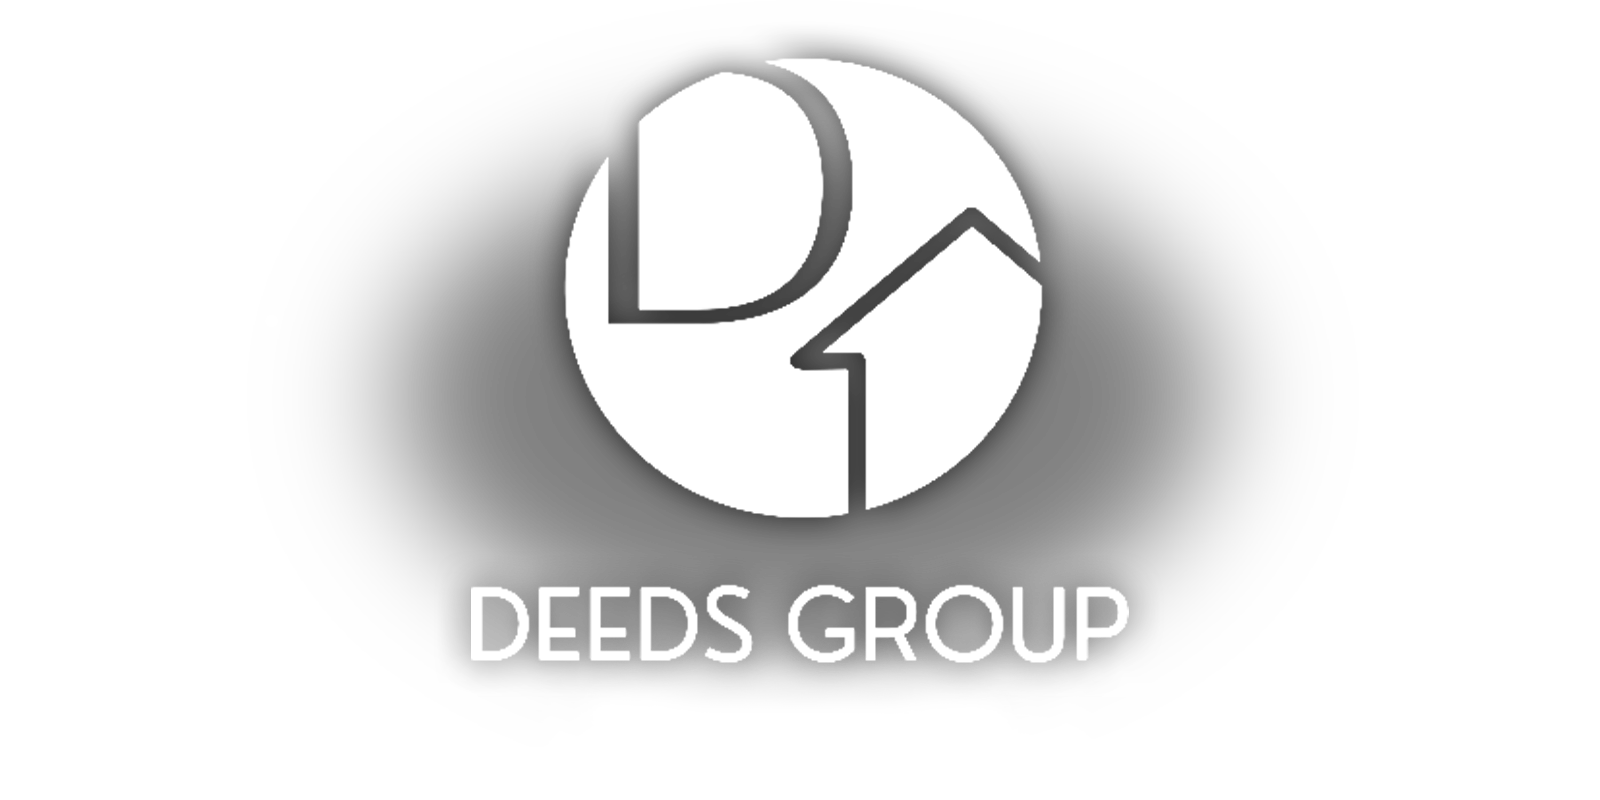 The Deeds Group